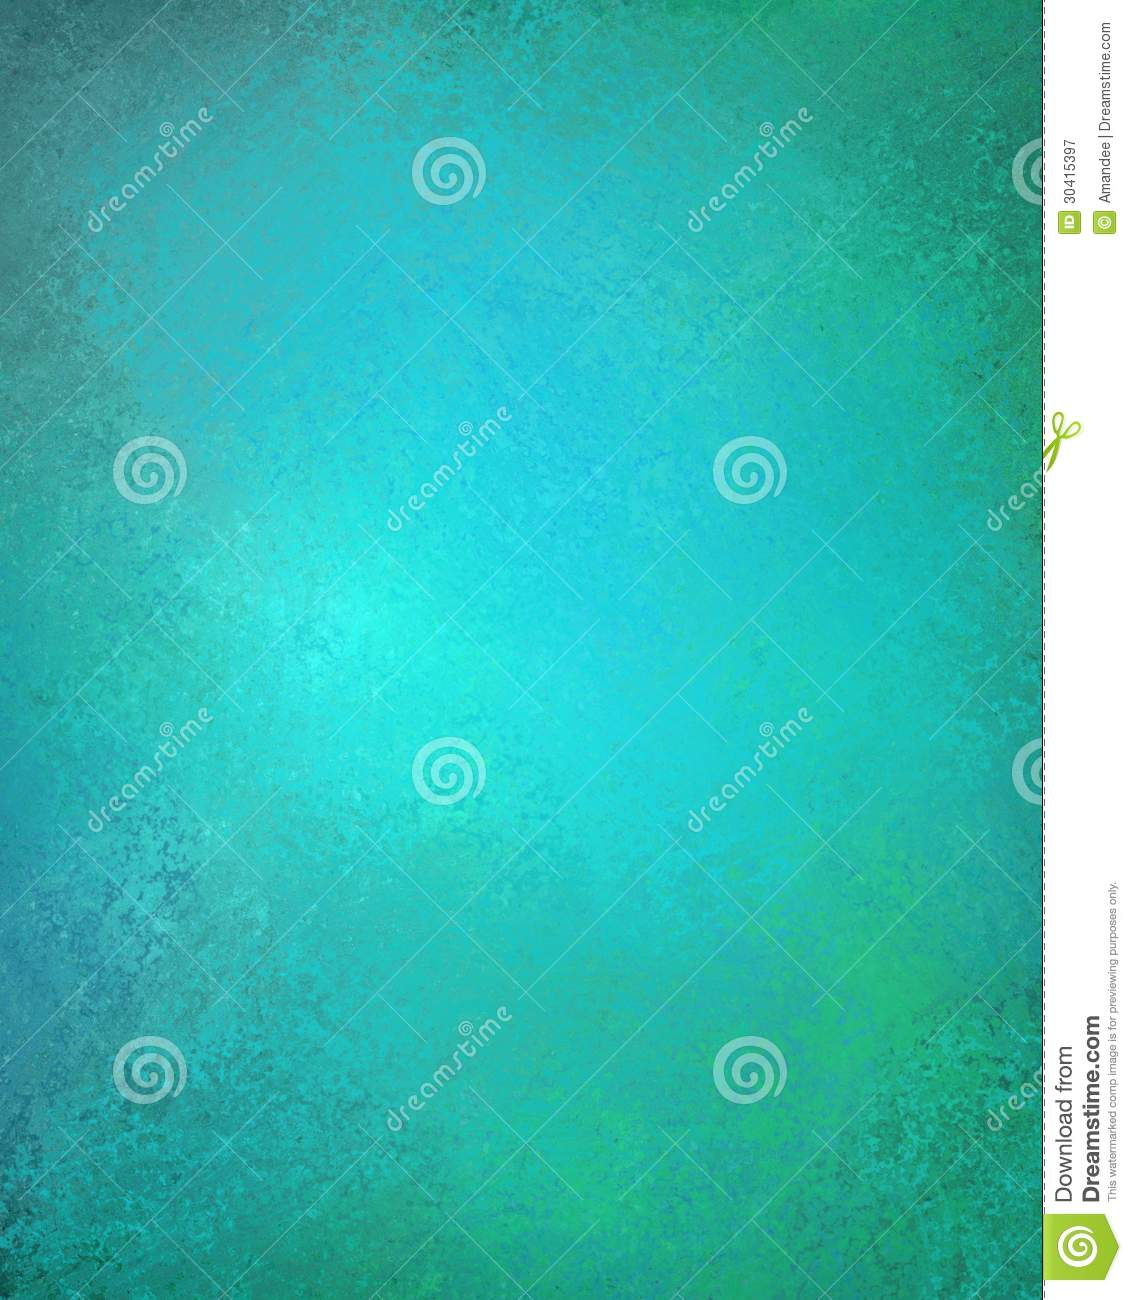 The Texture Of Teal And Turquoise: Teal Blue Background Texture Royalty Free Stock